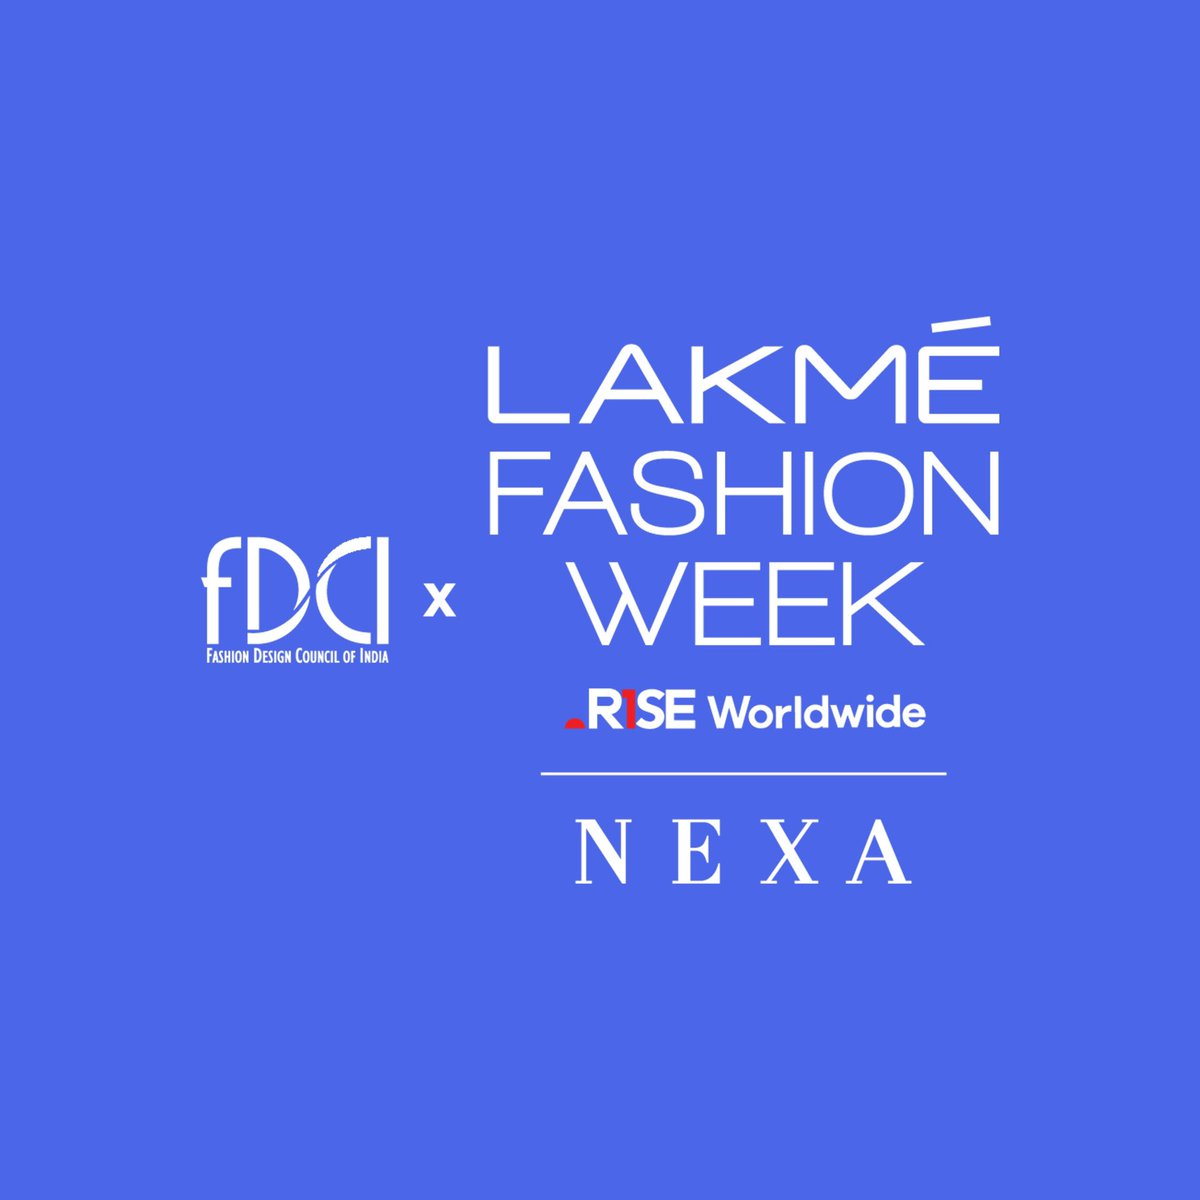 """As Lakmé Fashion Week ventures into a newly formed alliance with the Fashion Design Council of India (FDCI), here's the new """"unity logo"""", specially designed to mark this historic partnership.   @LakmeFashionWk @fdciofficial #LakmeFashionWeek #5DaysOfFashion #LFW #RiseAsOne"""